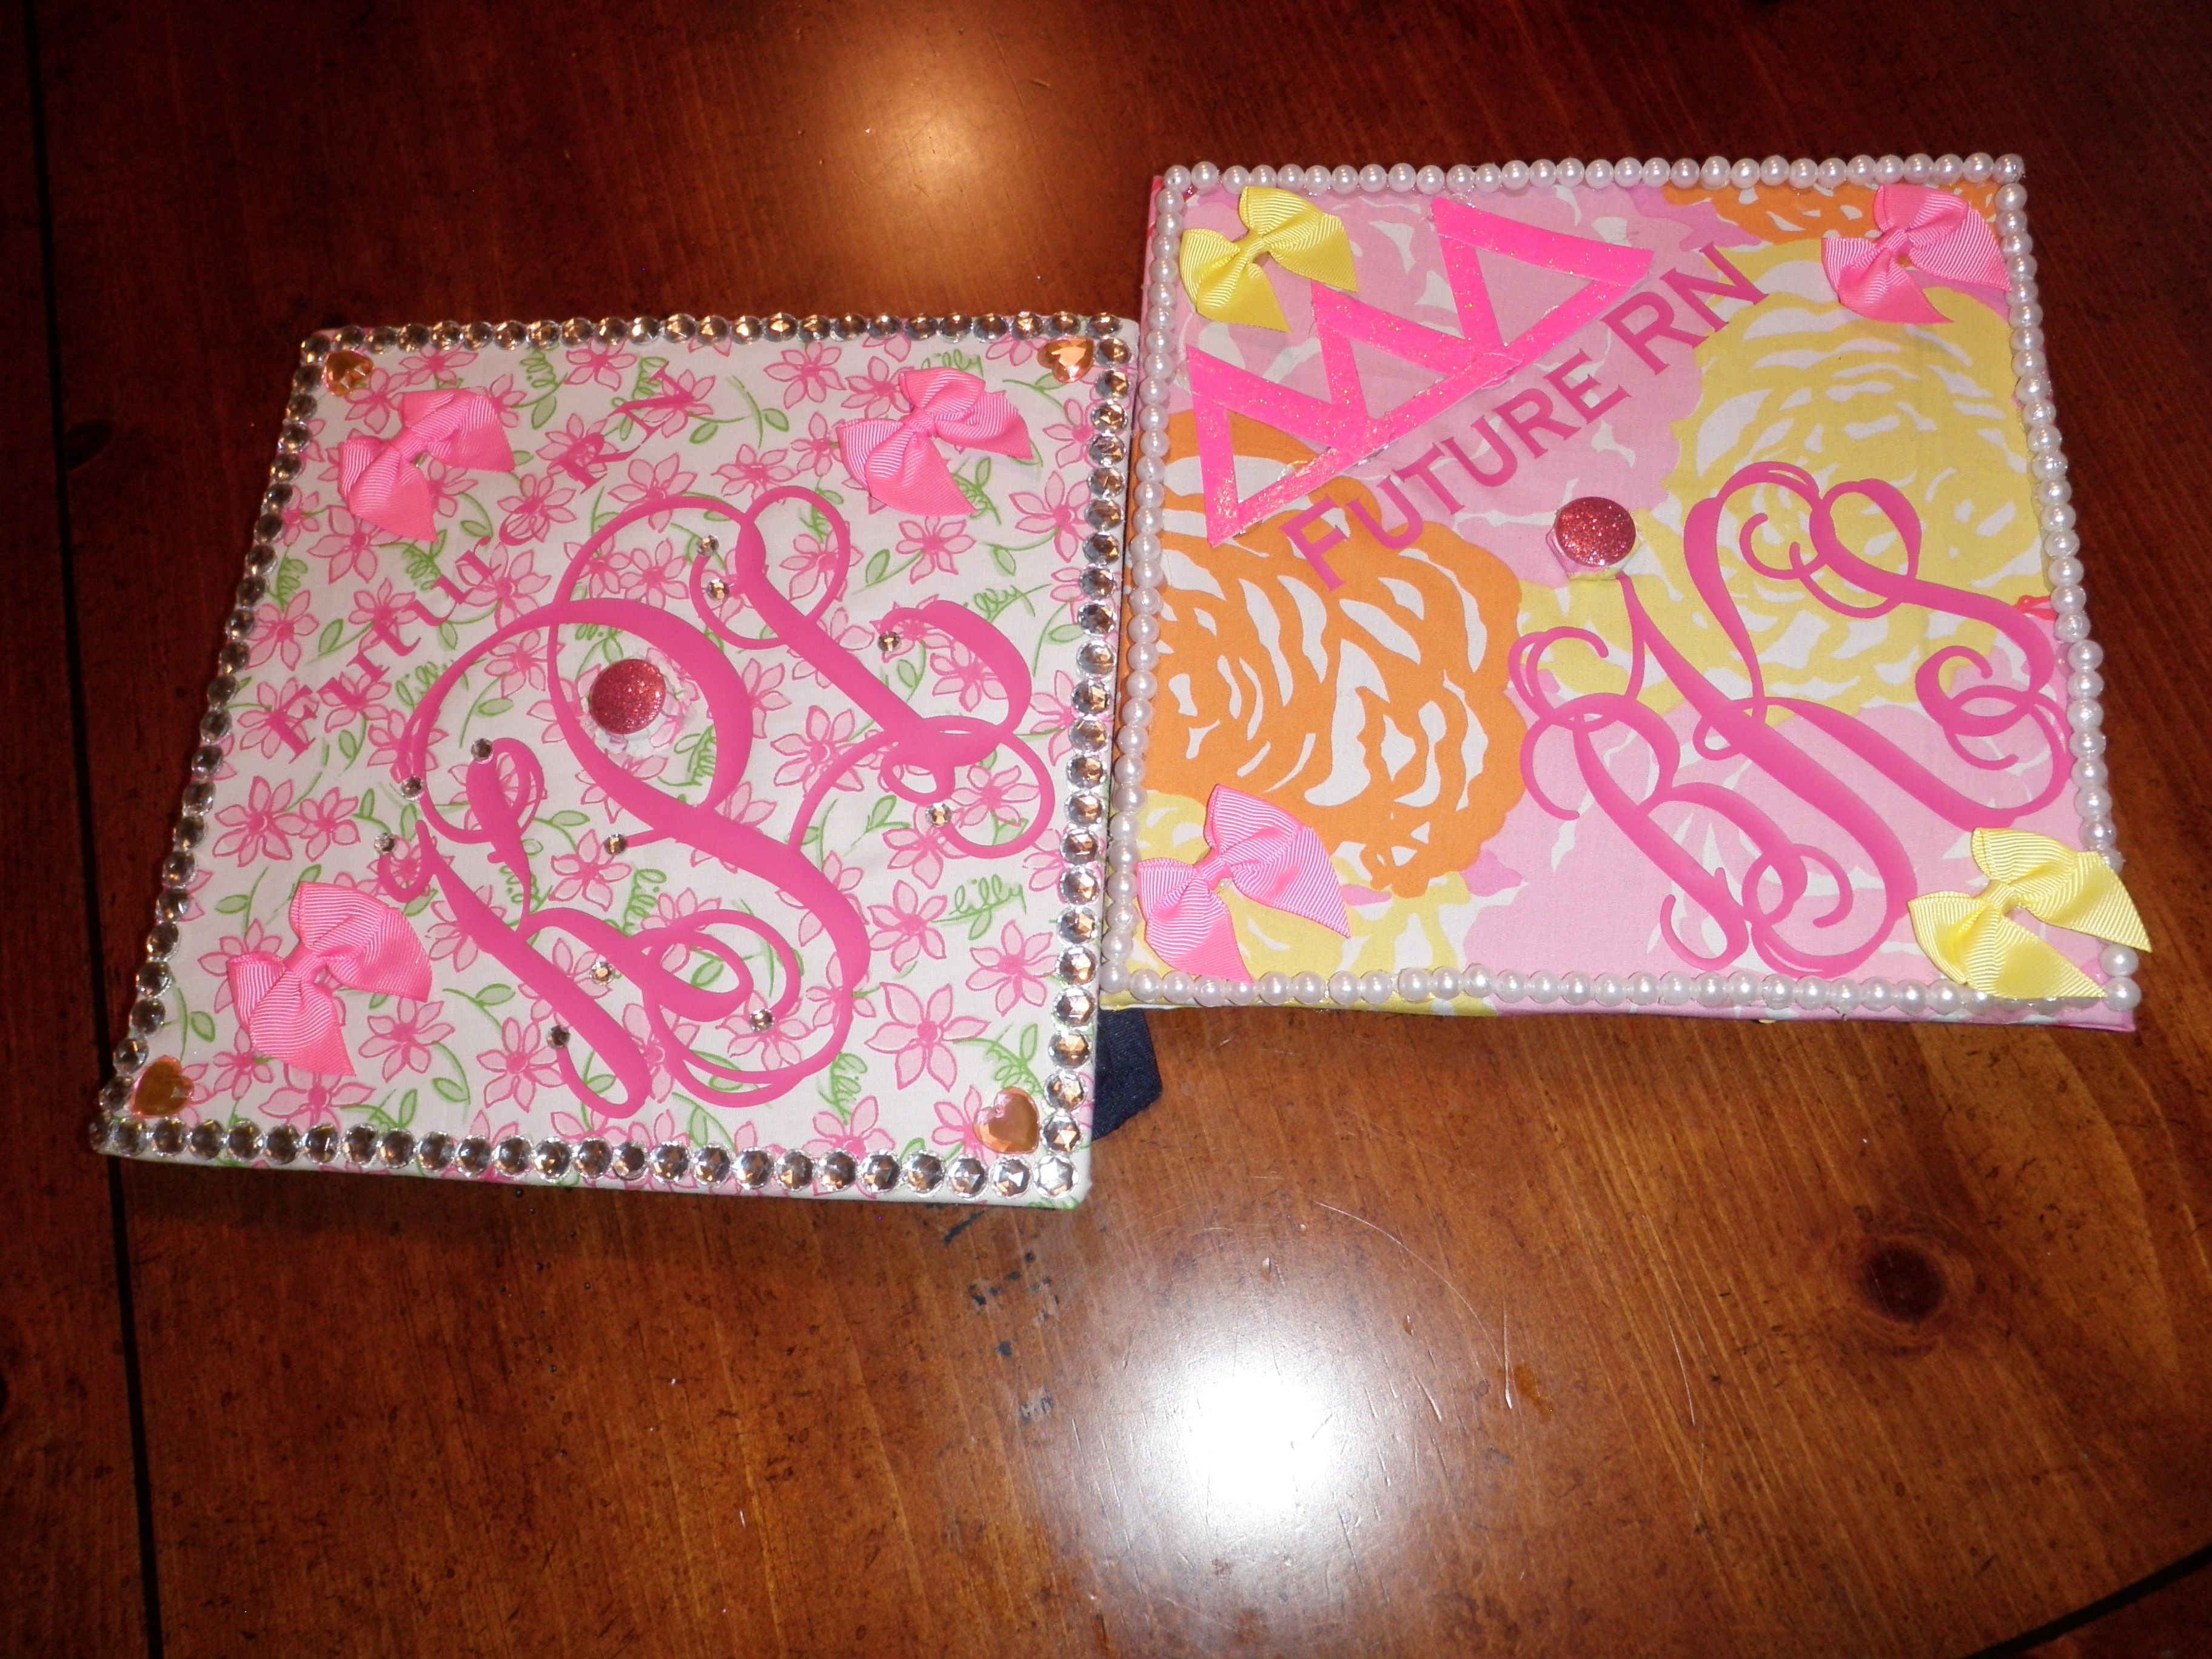 Serious moment brought to light with Lilly! [Lilly Pulitzer ...